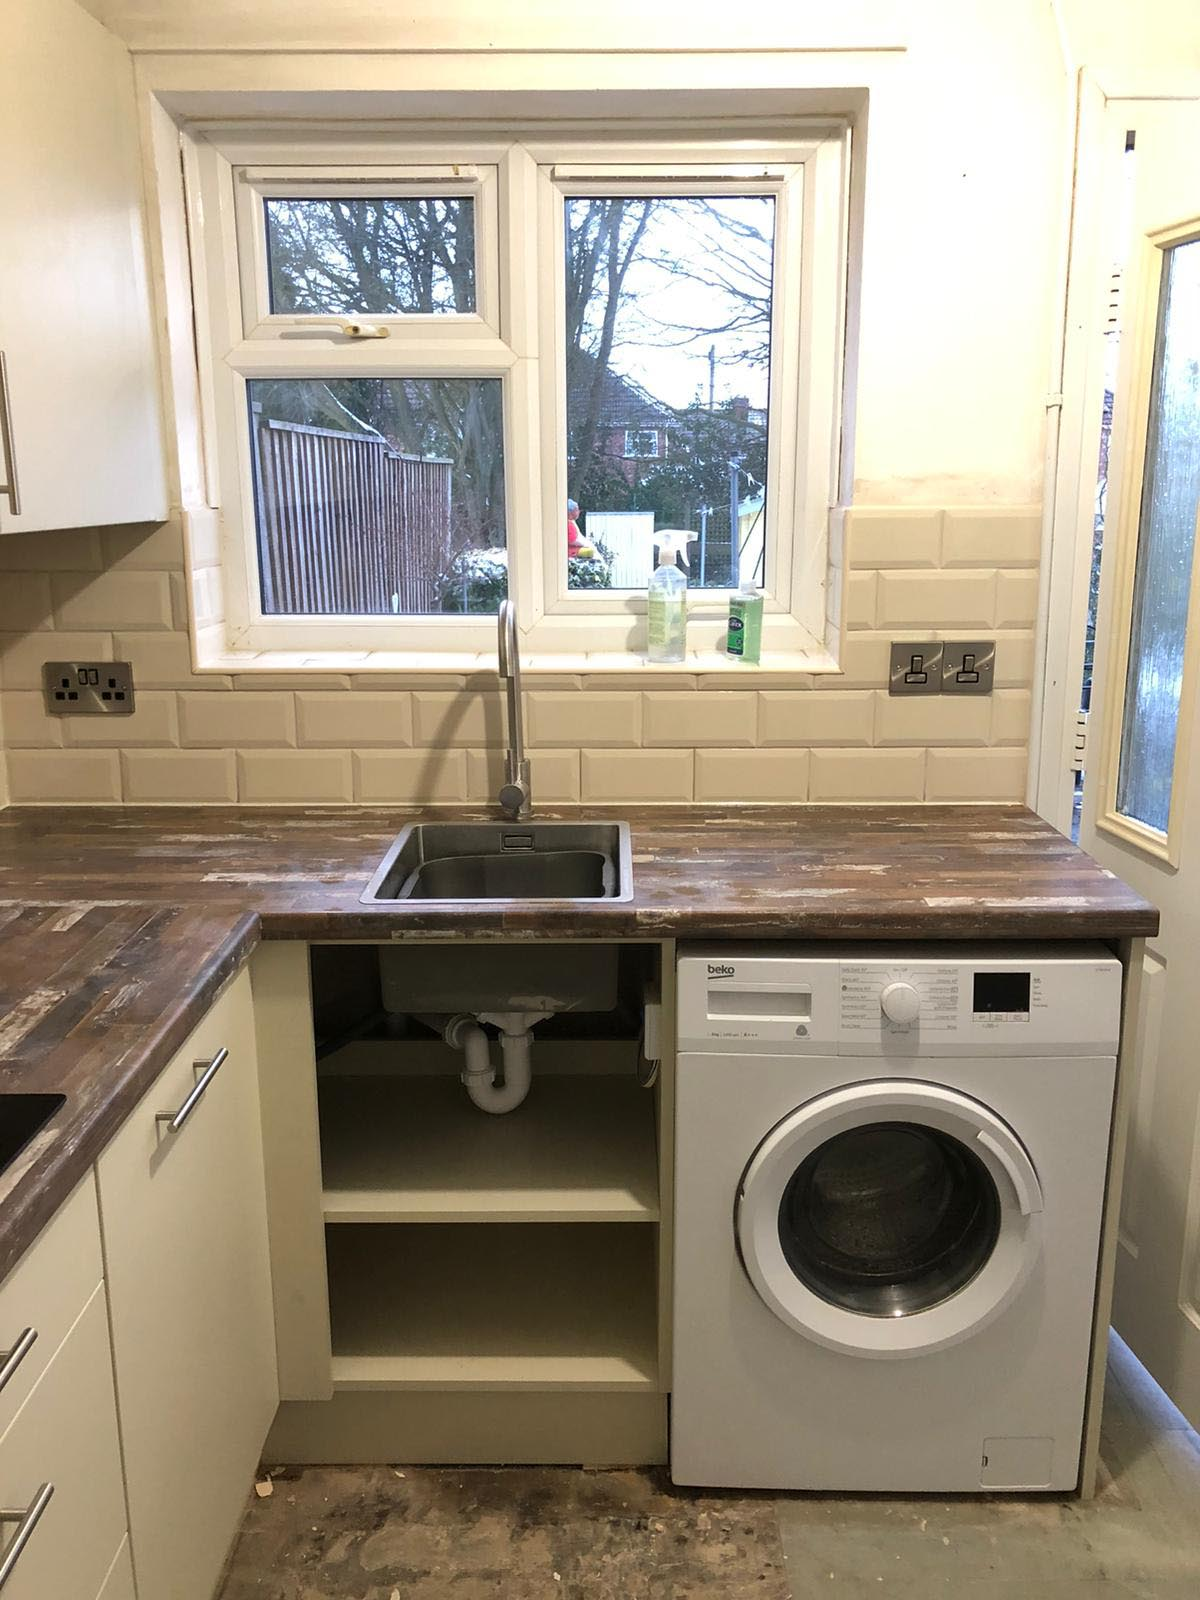 Mrs Websters Kitchen Installation, Mansfield